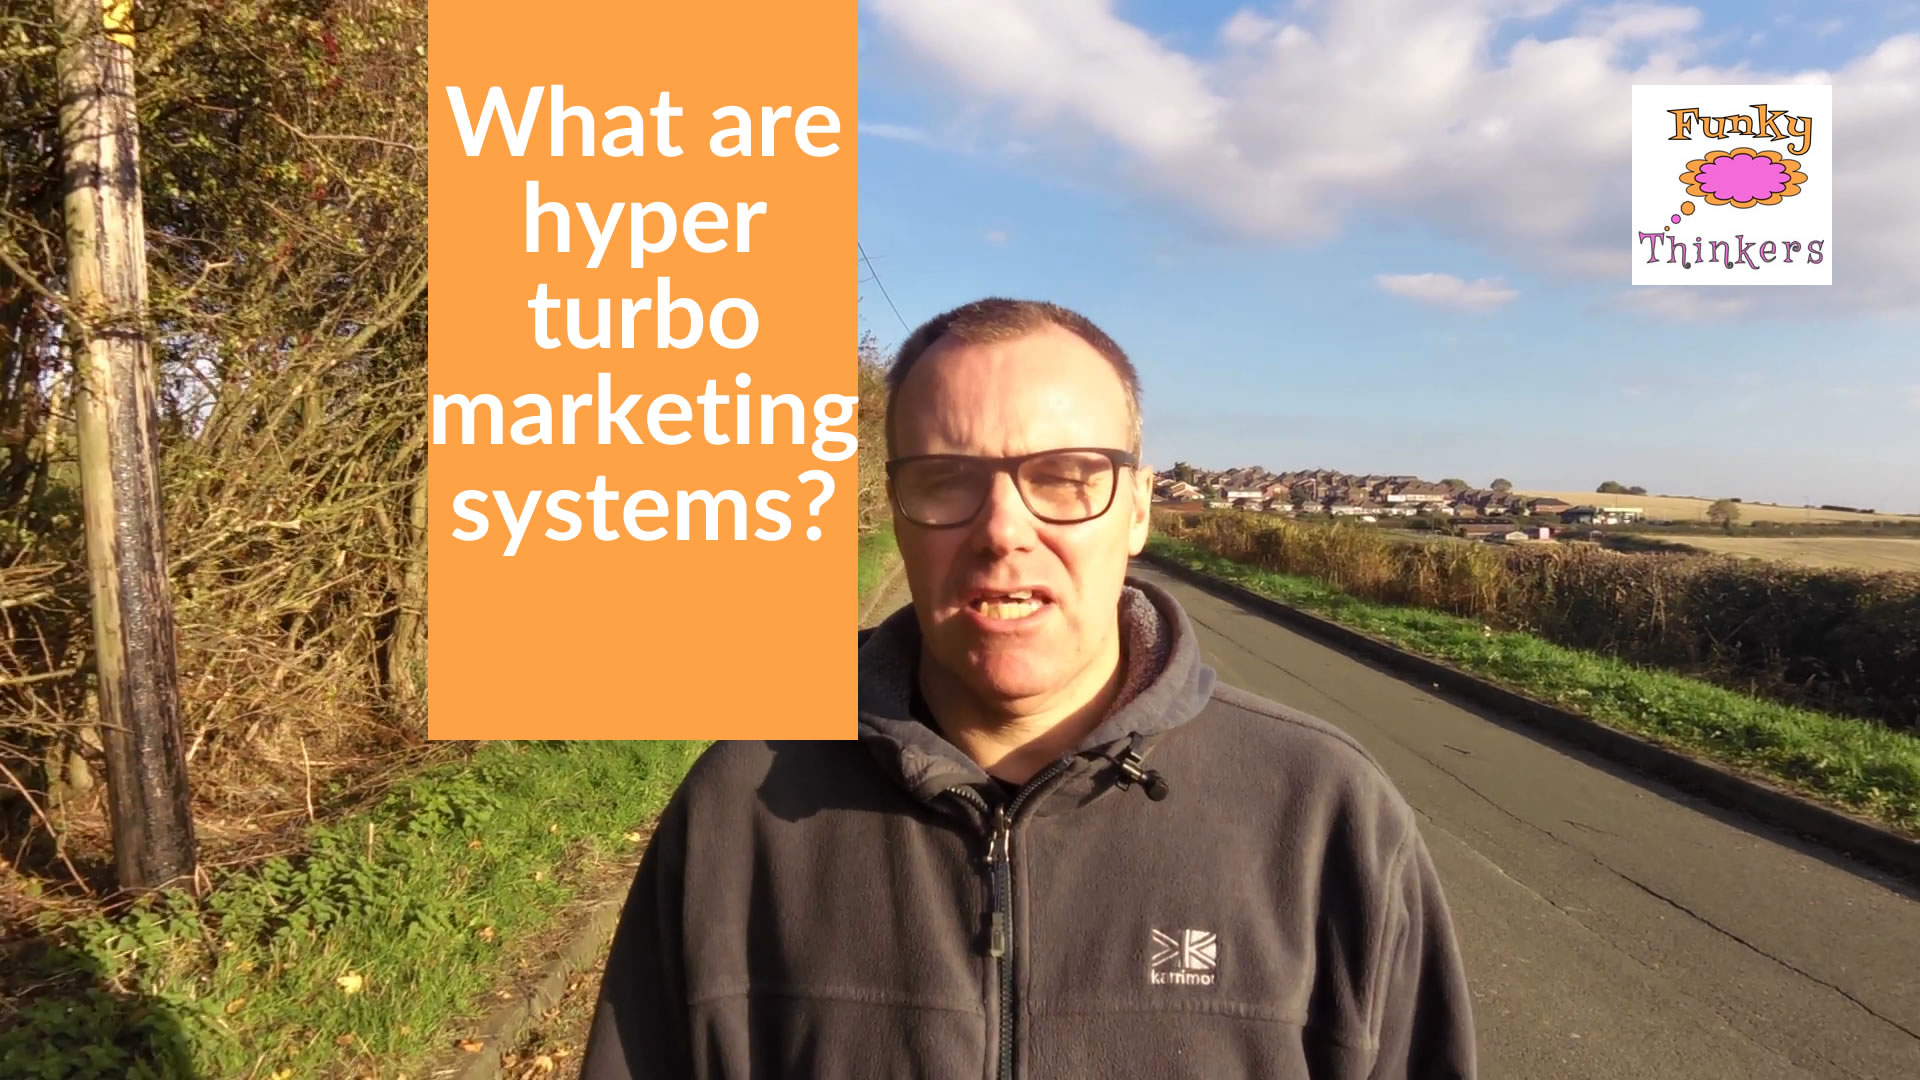 43 what are hyper turbo marketing systems